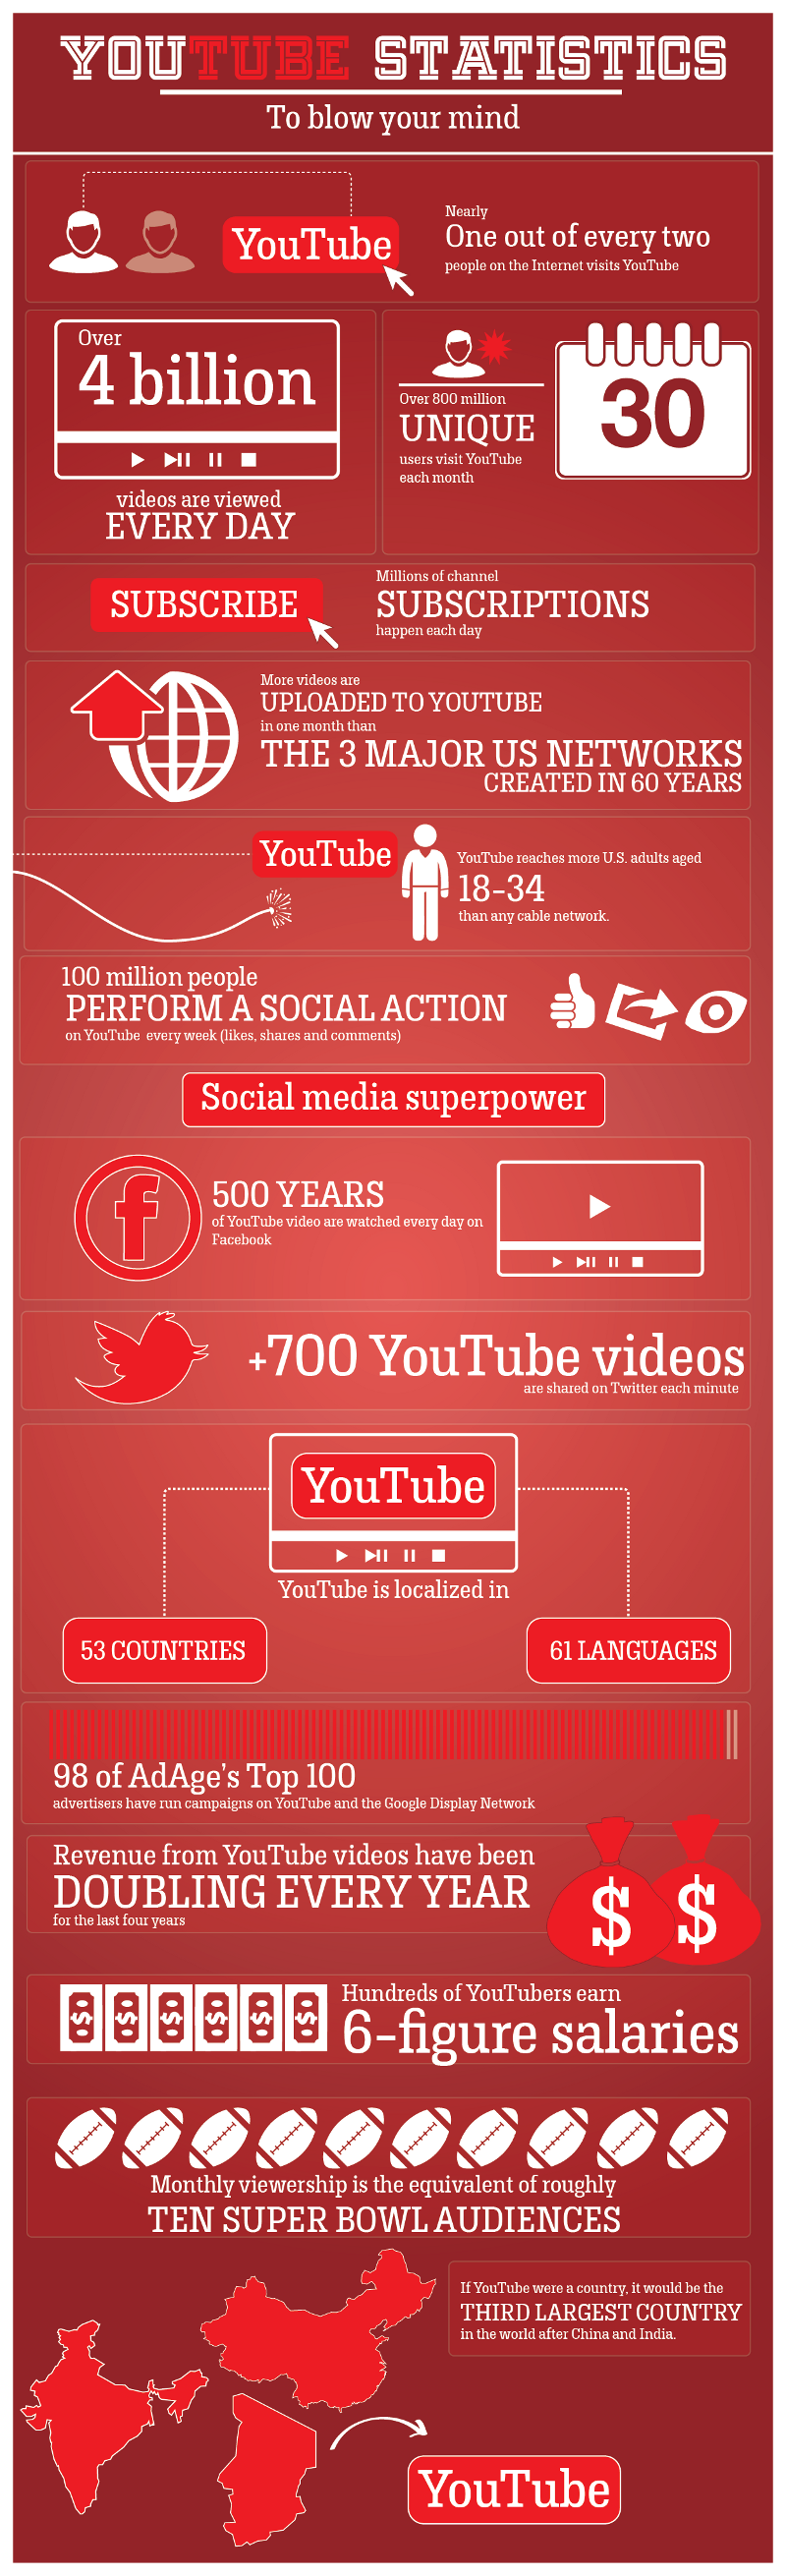 YouTube Statistics and Trends